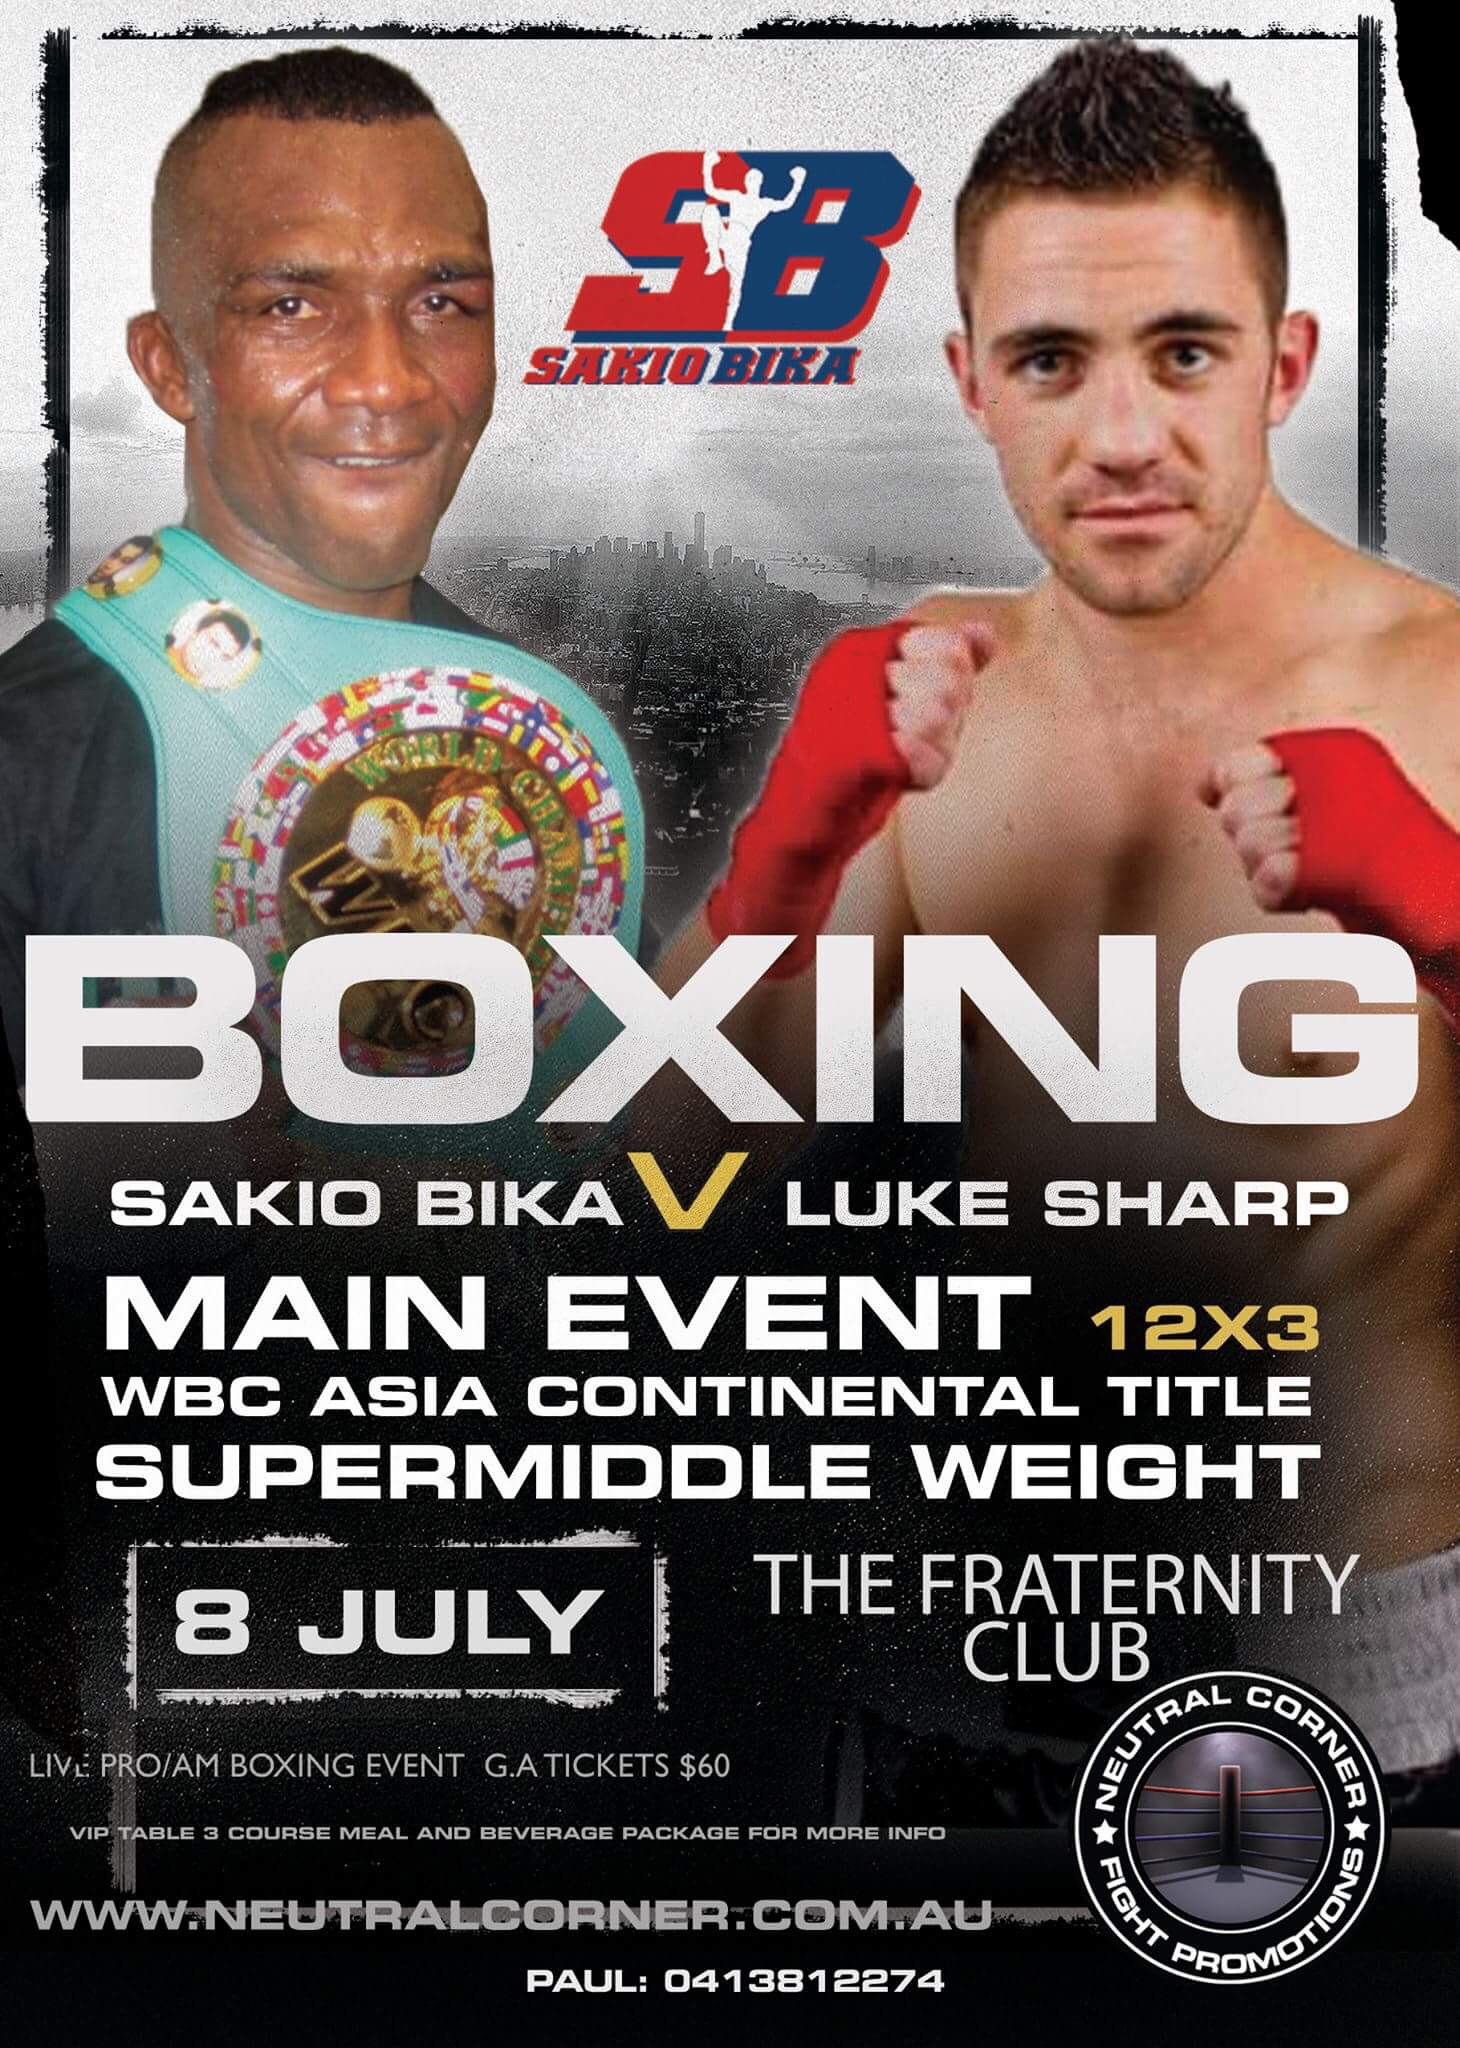 Sakio Bika v Luke Sharp